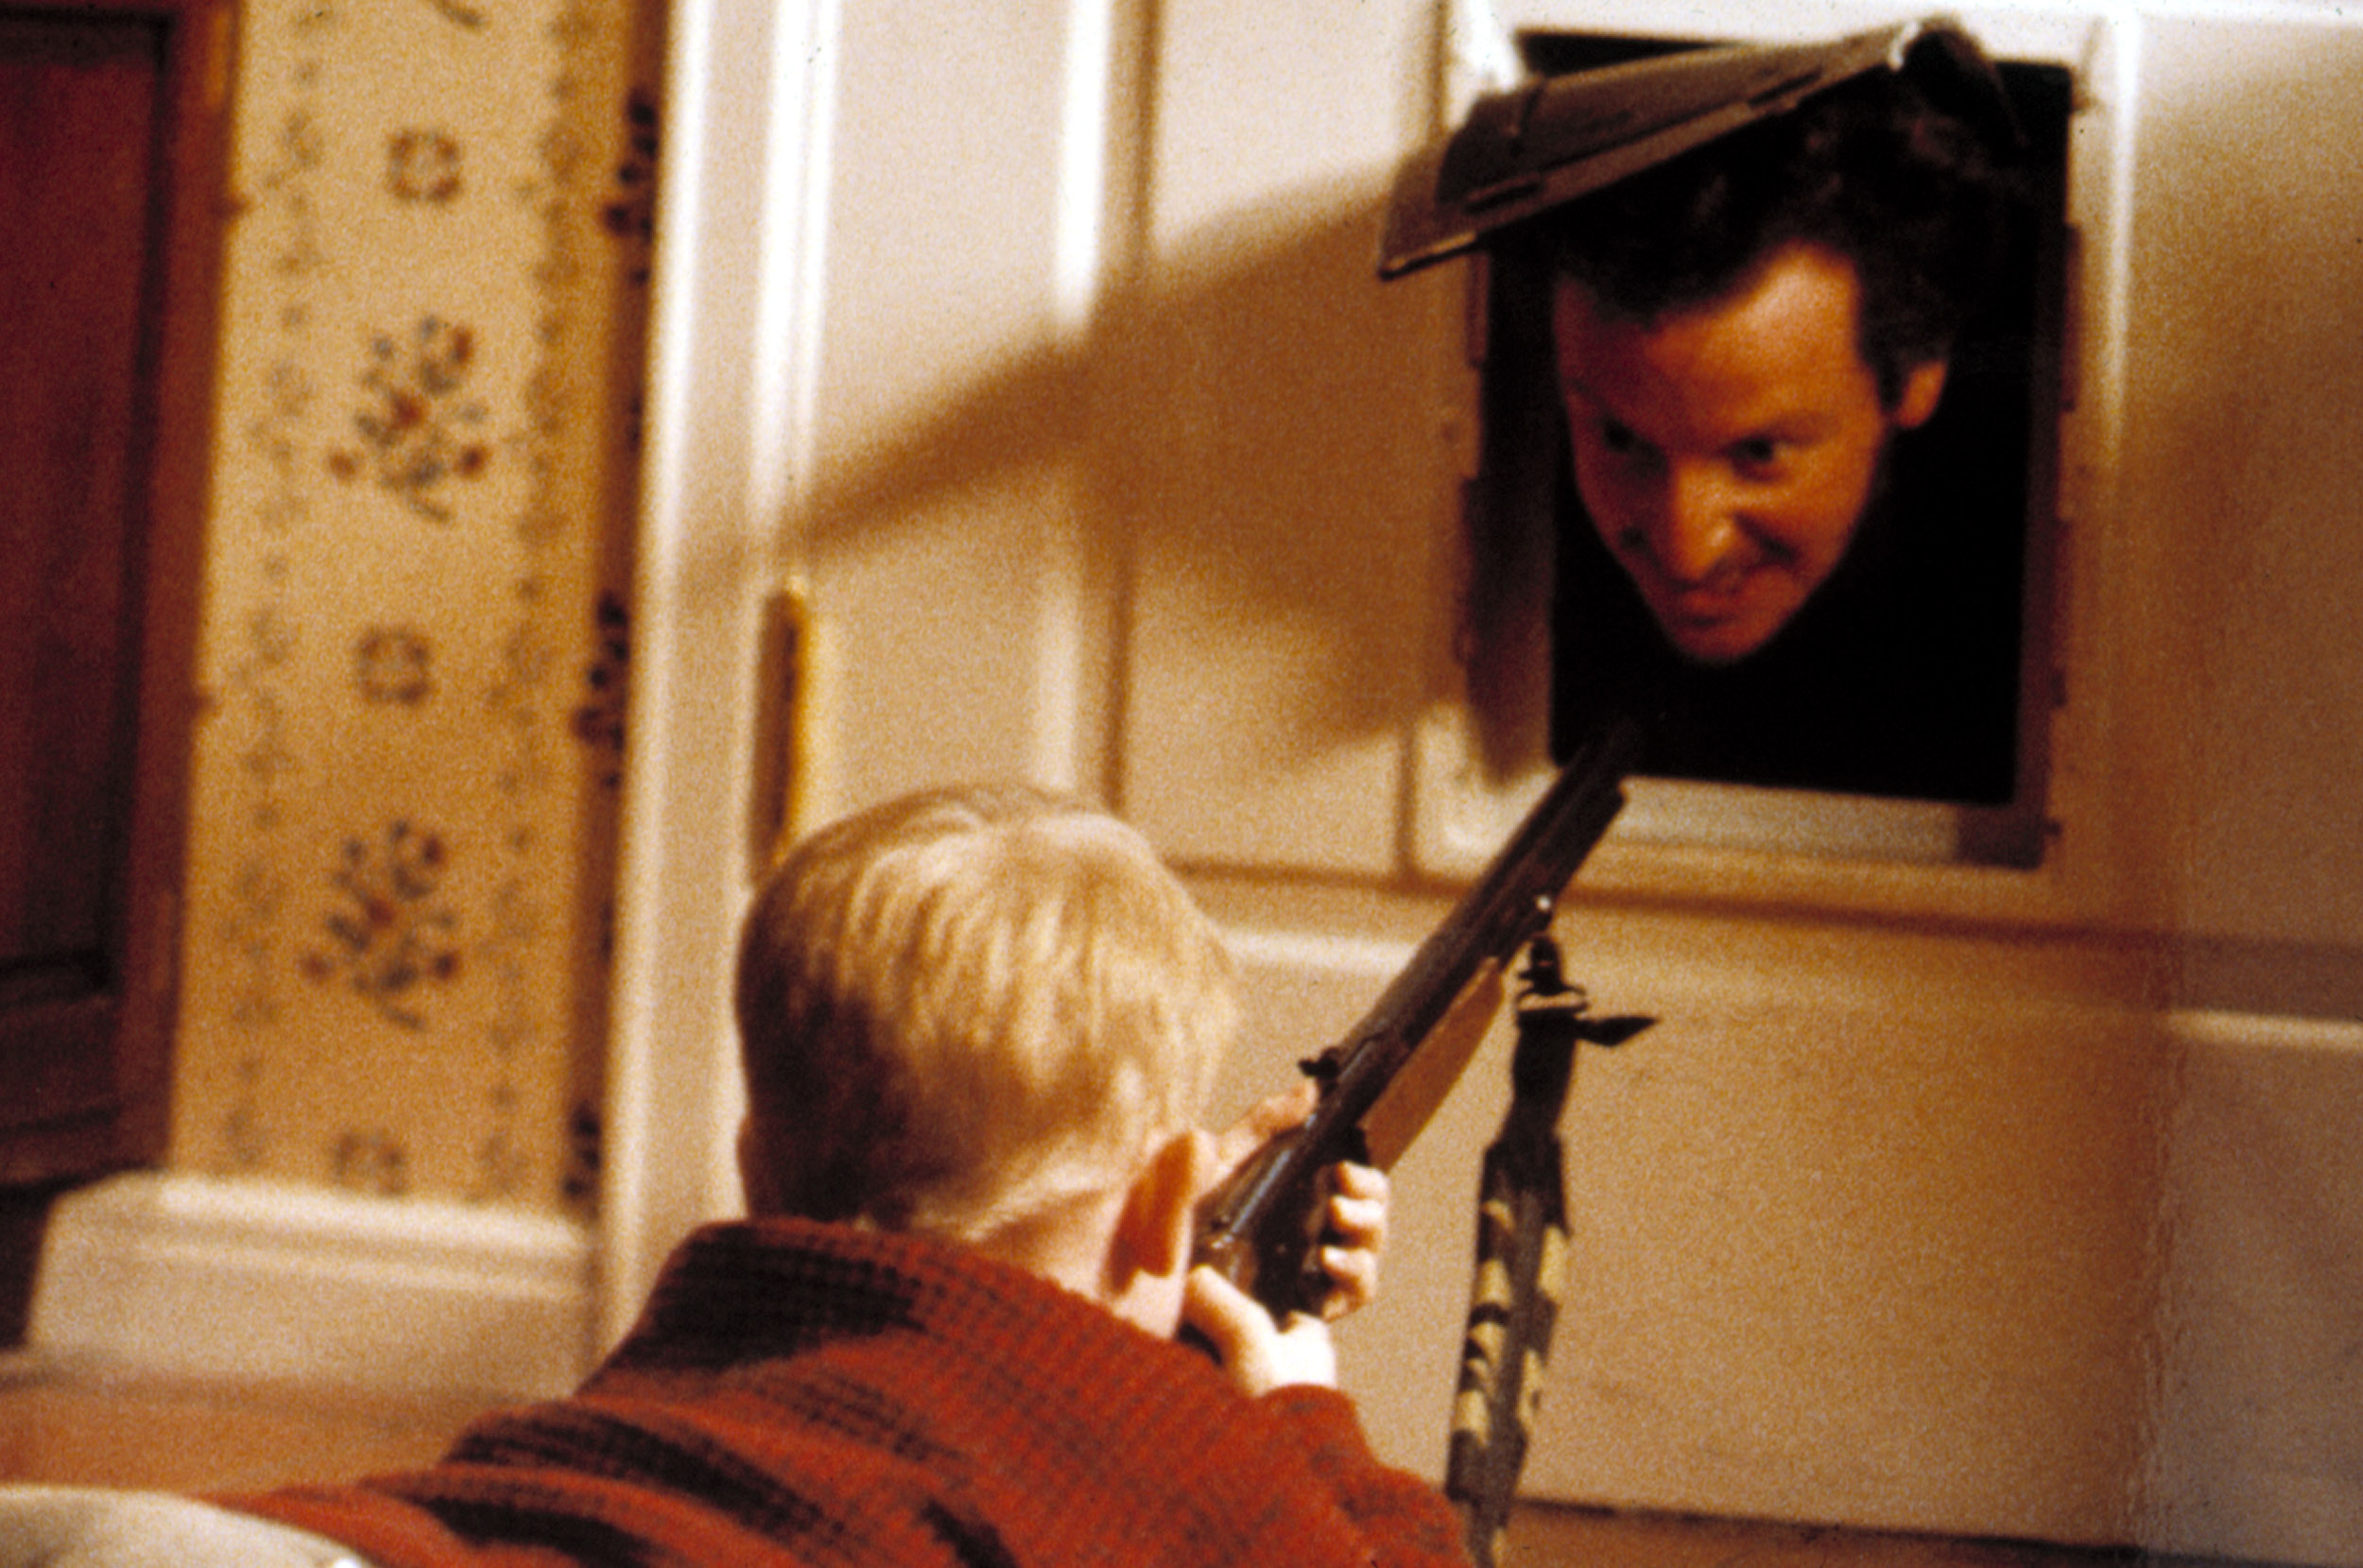 HOME ALONE, Macaulay Culkin, Daniel Stern, 1990. TM and Copyright (c) 20th Century Fox Film Corp. All rights reserved. Courtesy: Everett Collection.